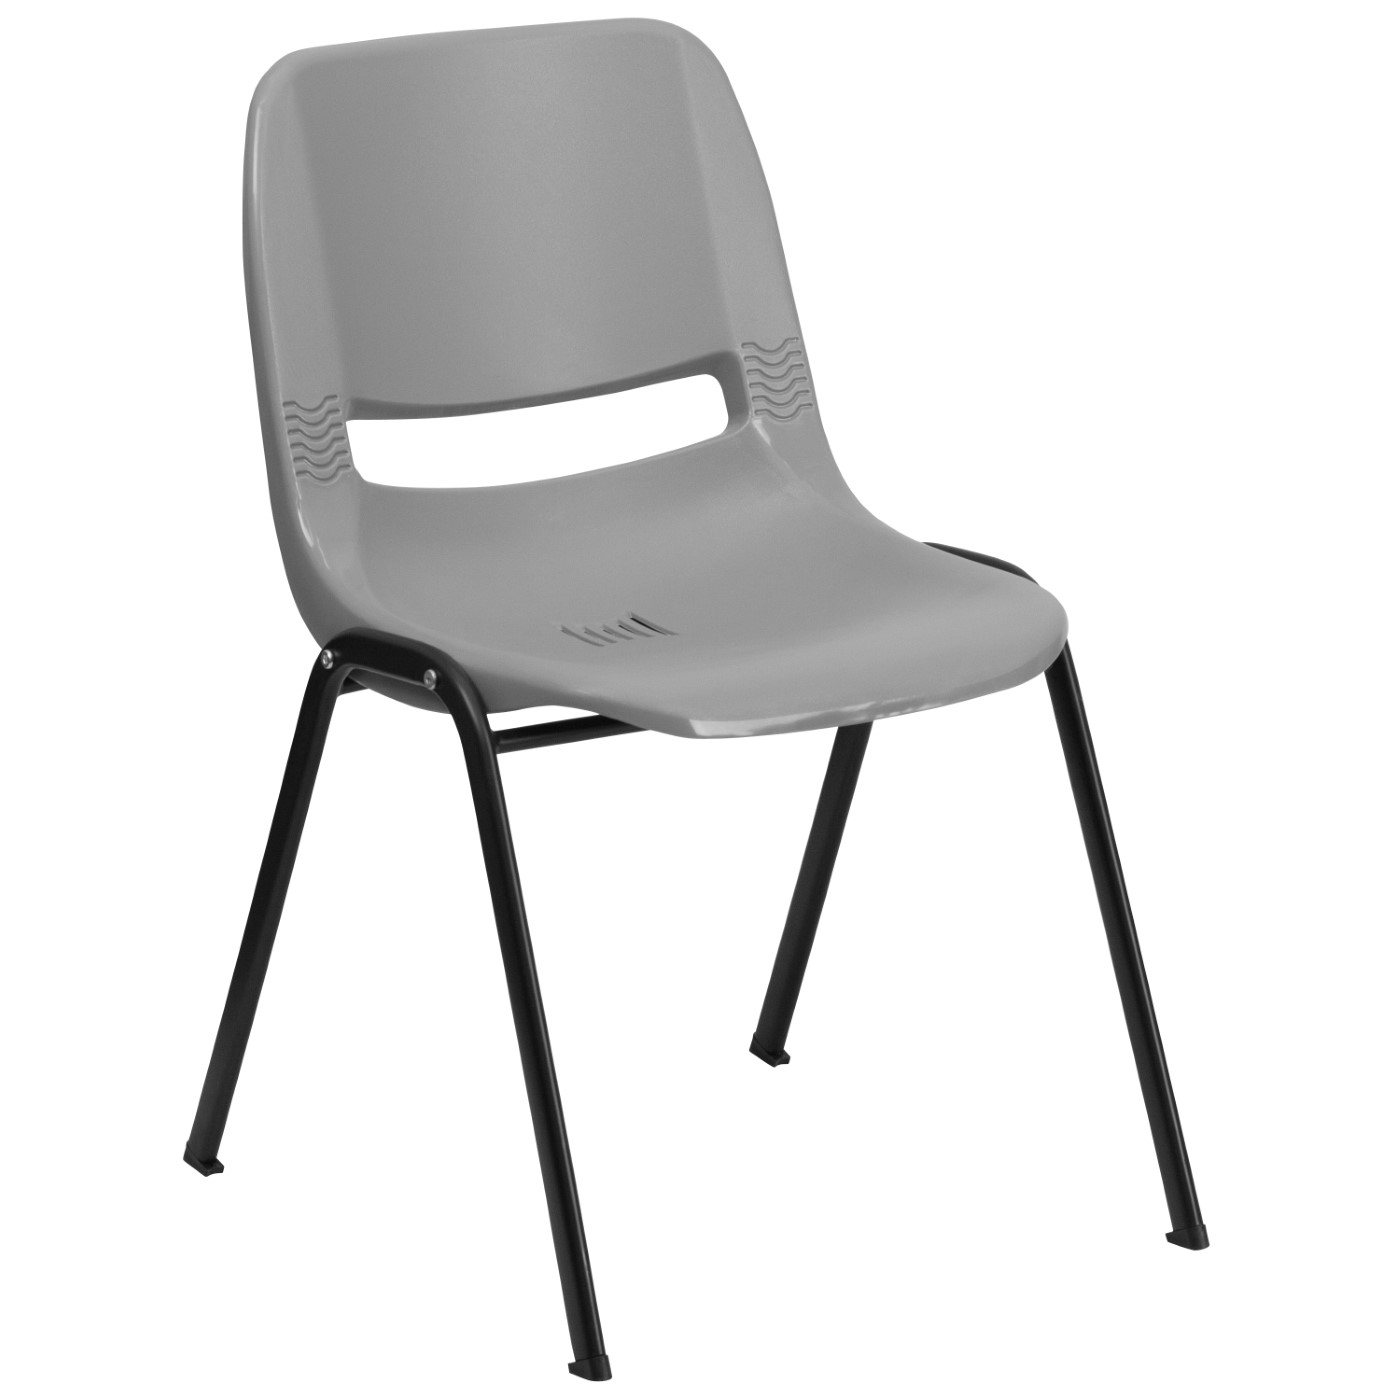 TOUGH ENOUGH Series 880 lb. Capacity Gray Ergonomic Shell Stack Chair with Black Frame